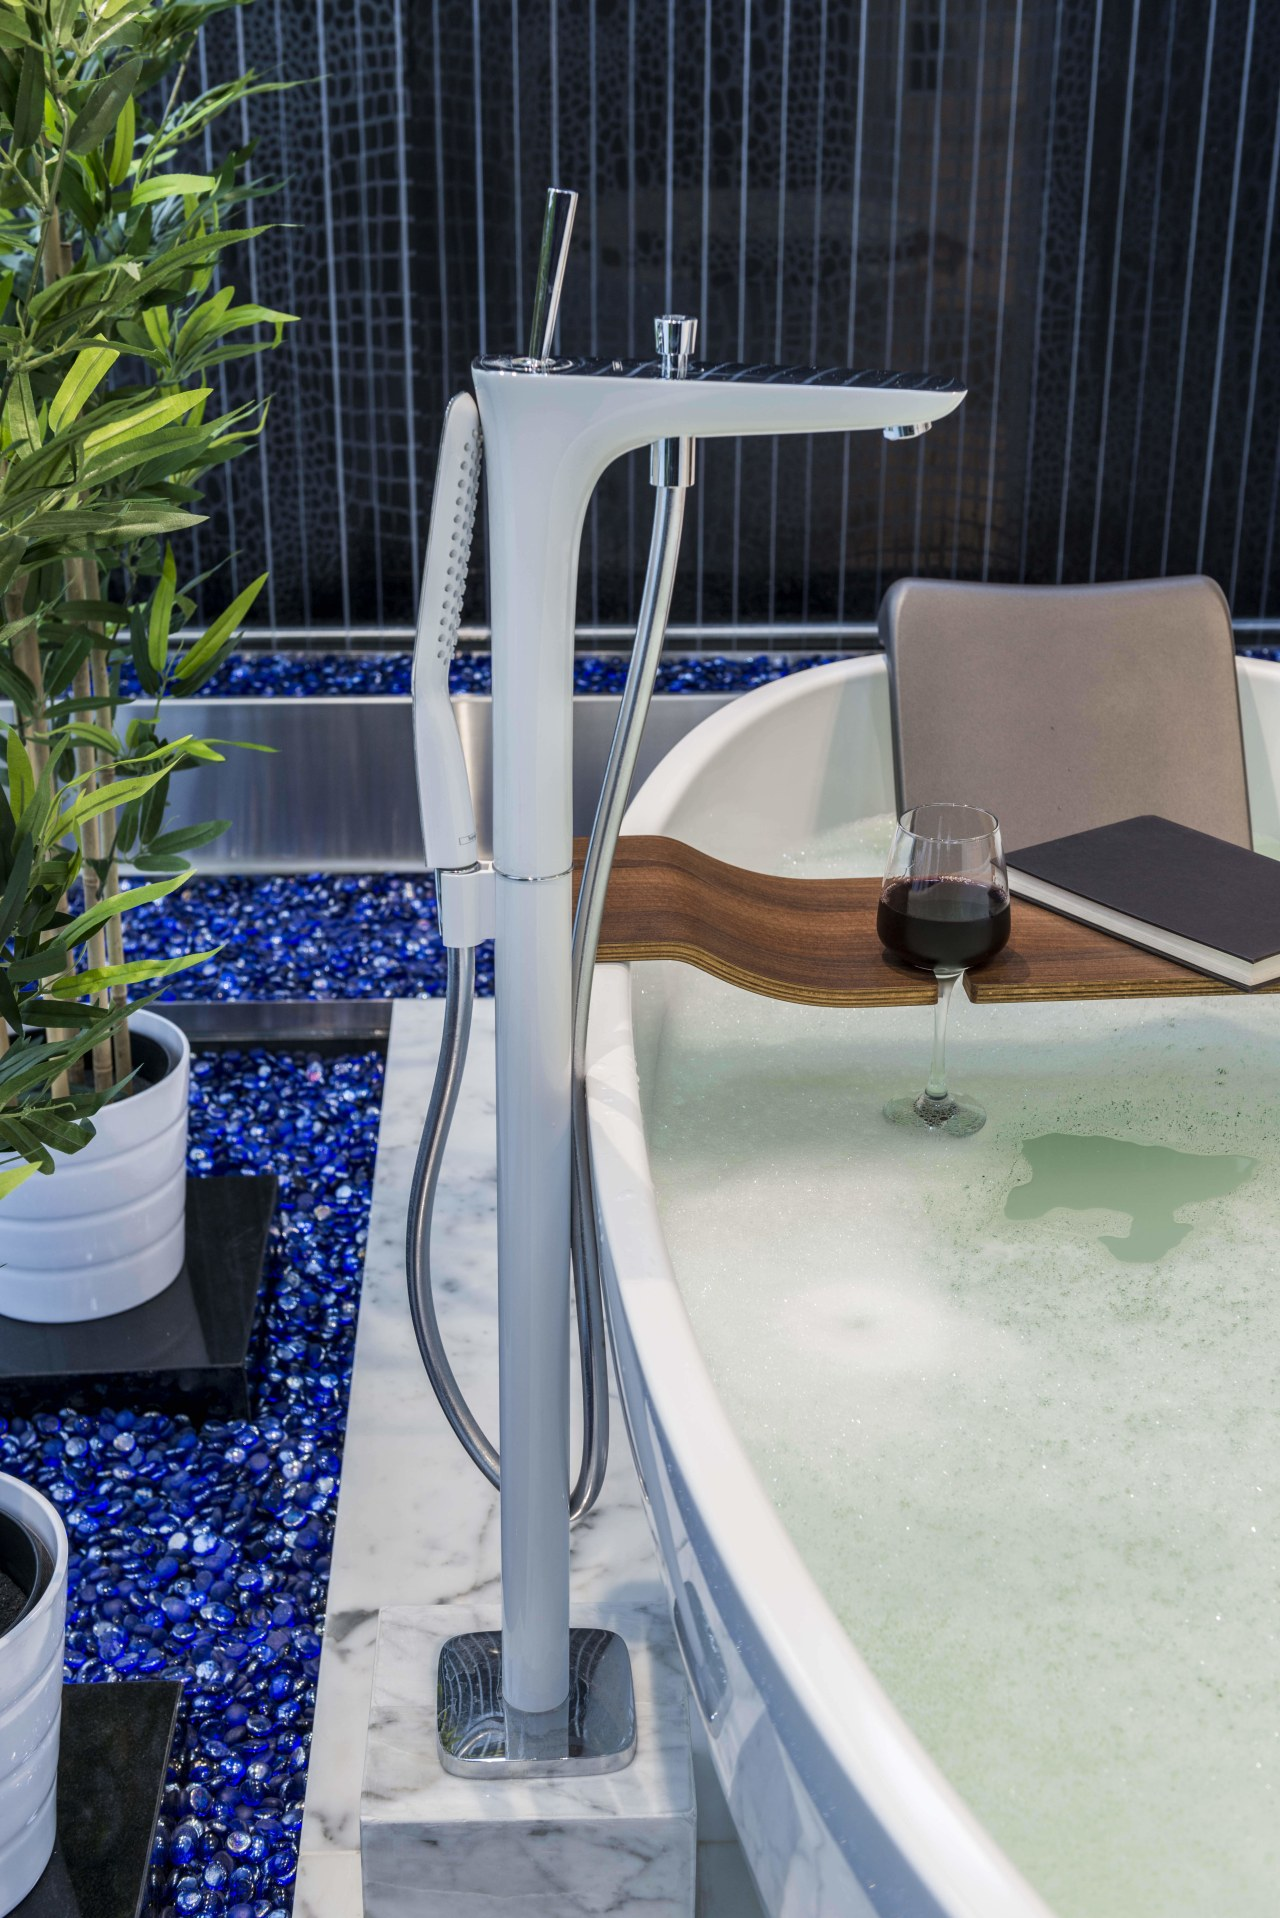 Blue glass pebbles were introduced at the base bathtub, plumbing fixture, swimming pool, water, gray, black